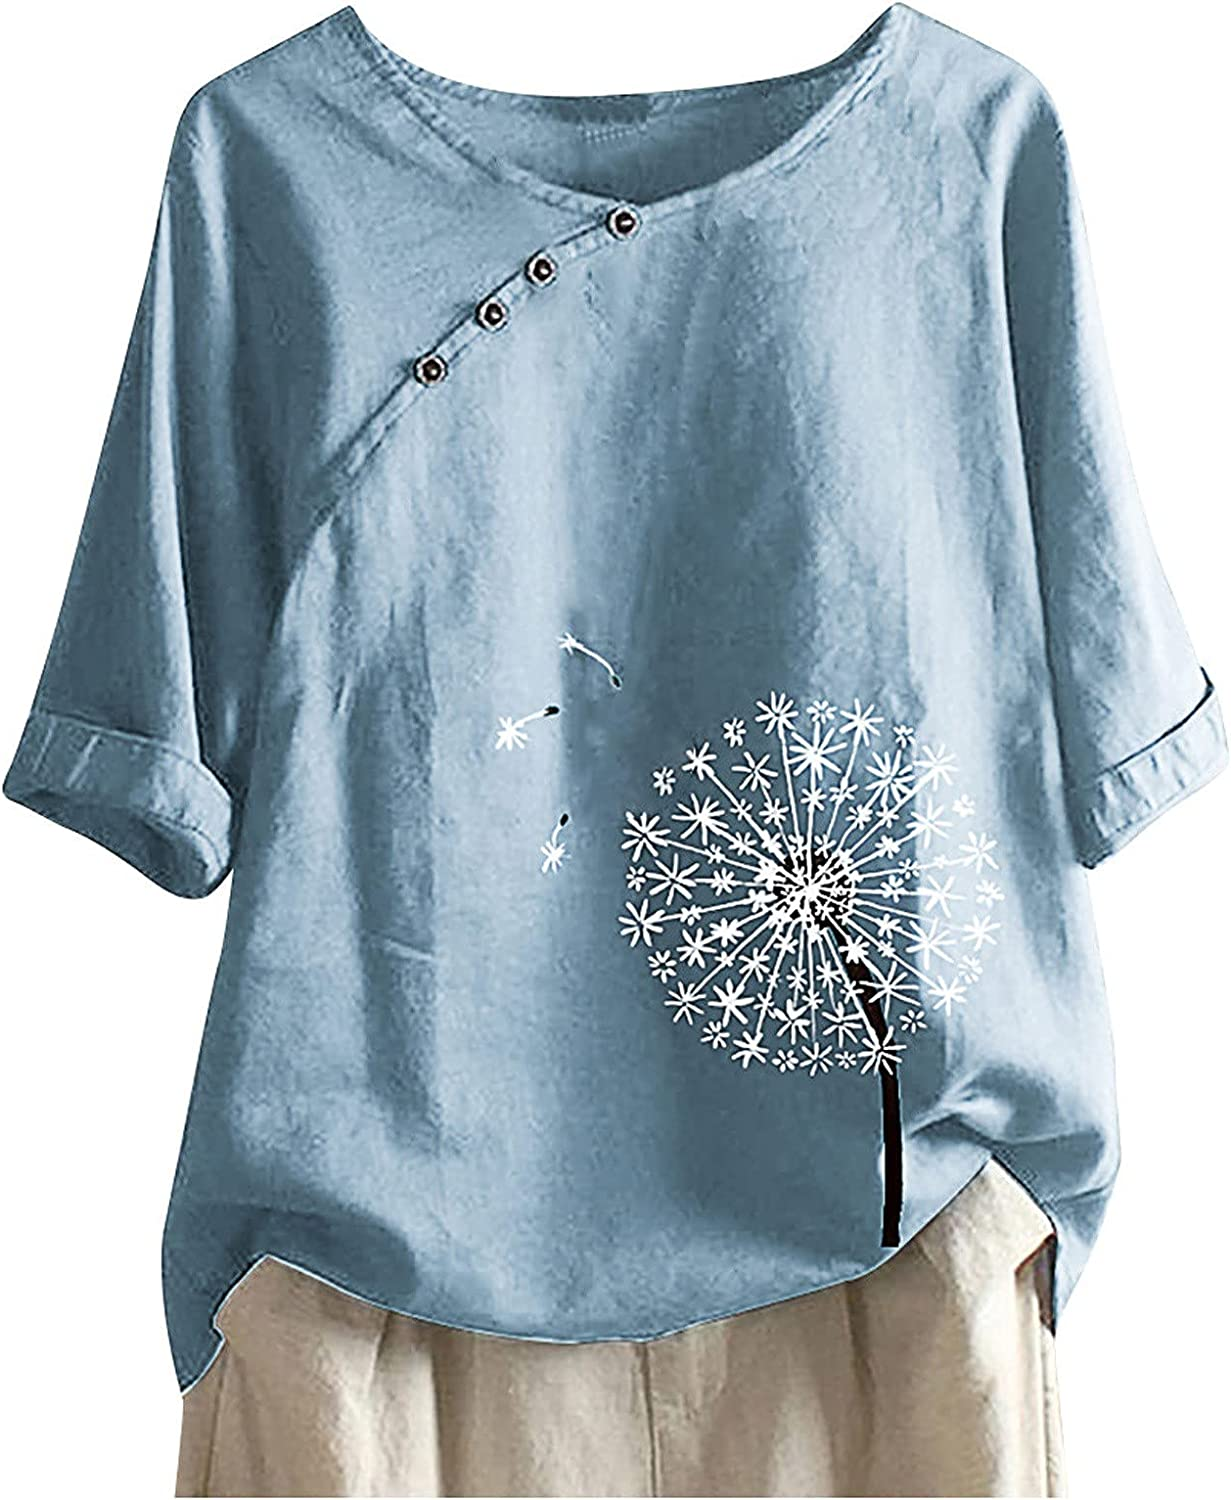 Women's Plus Size 3/4 Sleeve Tees Cotton Linen Tops Loose Fit Floral Print Casual Shirt Crew Neck Tunic Blouses